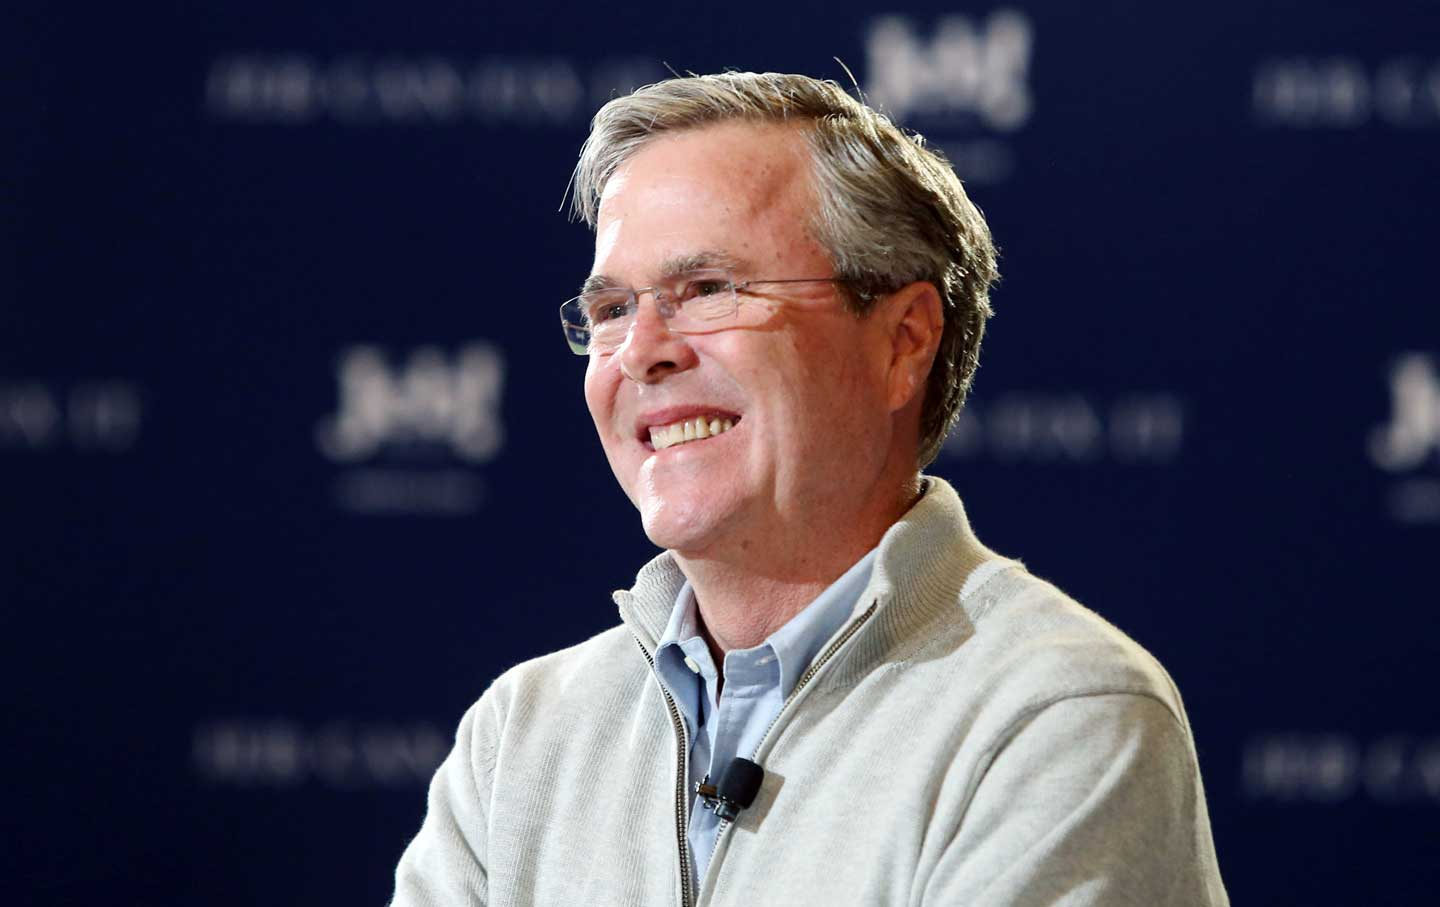 jeb_bush_smile_ap_img